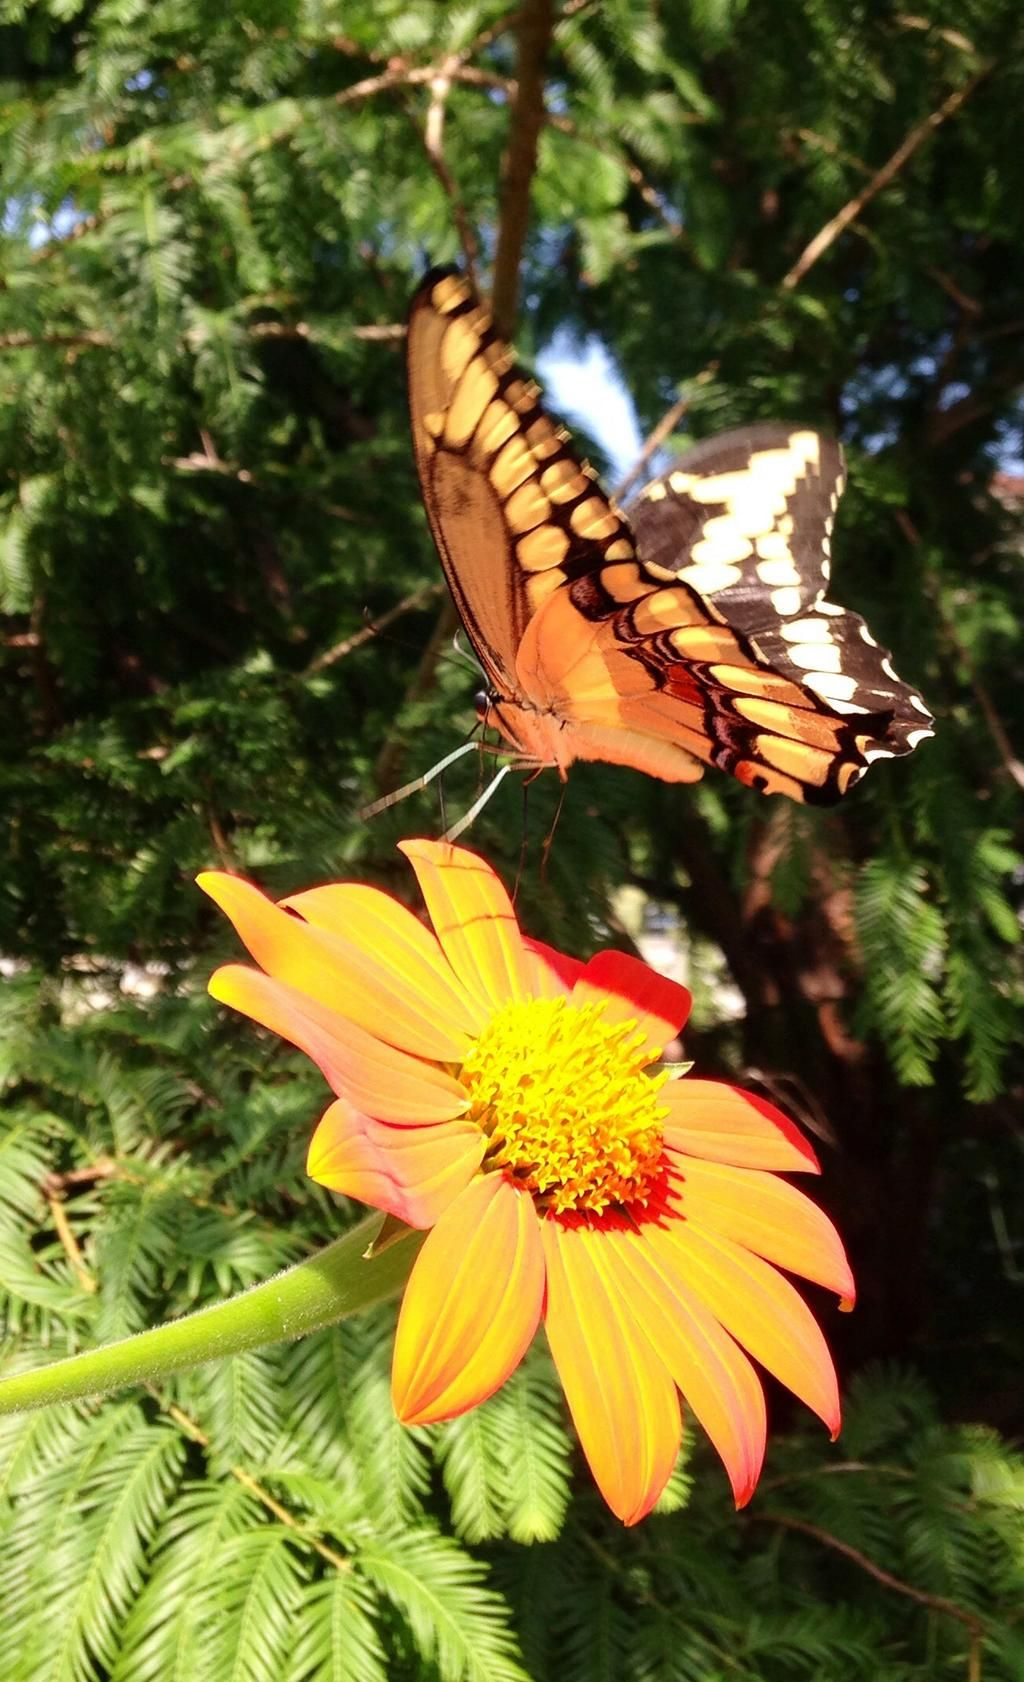 Butterflies Are Slowly Making An Appearance In The Butterfly Habitat Garden;  Tithonia Is A Favorite